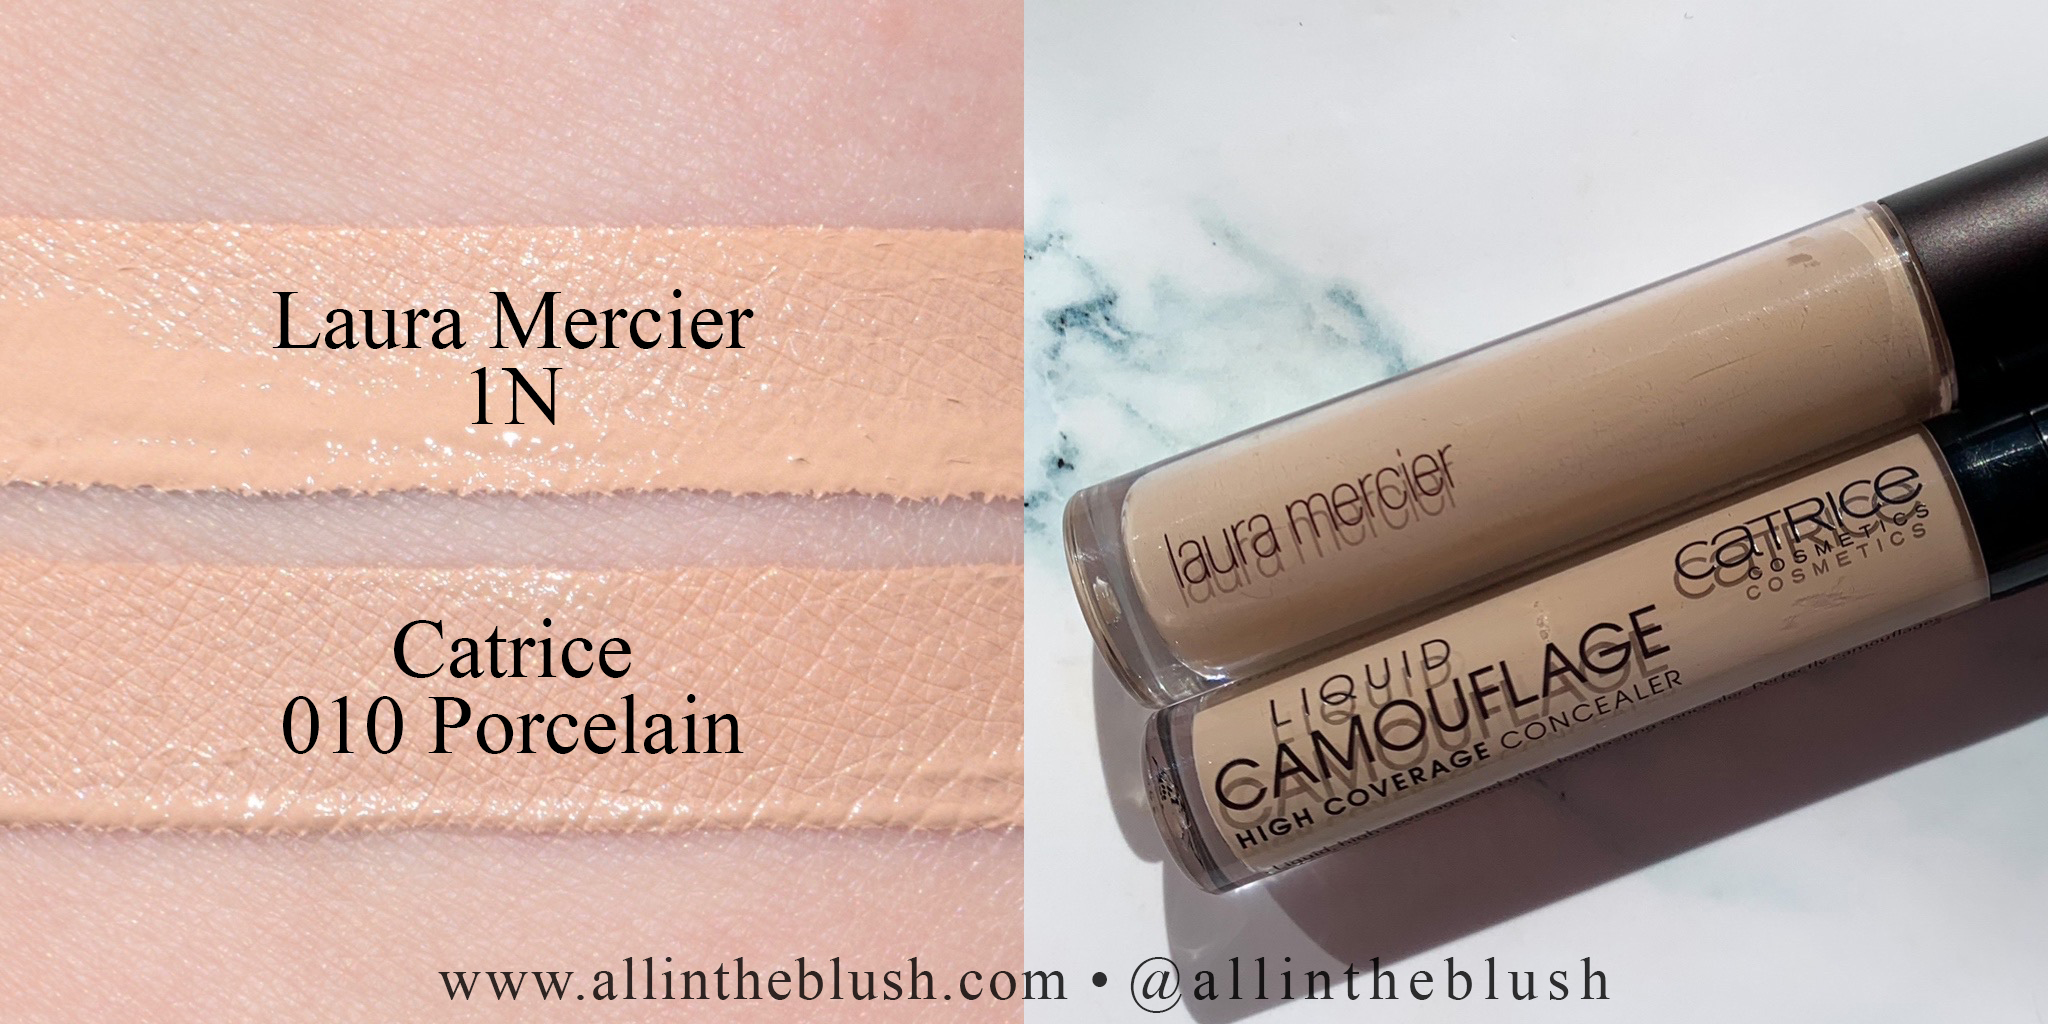 Swatch - Laura Mercier 1N and Catrice Cosmetics Liquid Camouflage Concealer 010 Porcelain